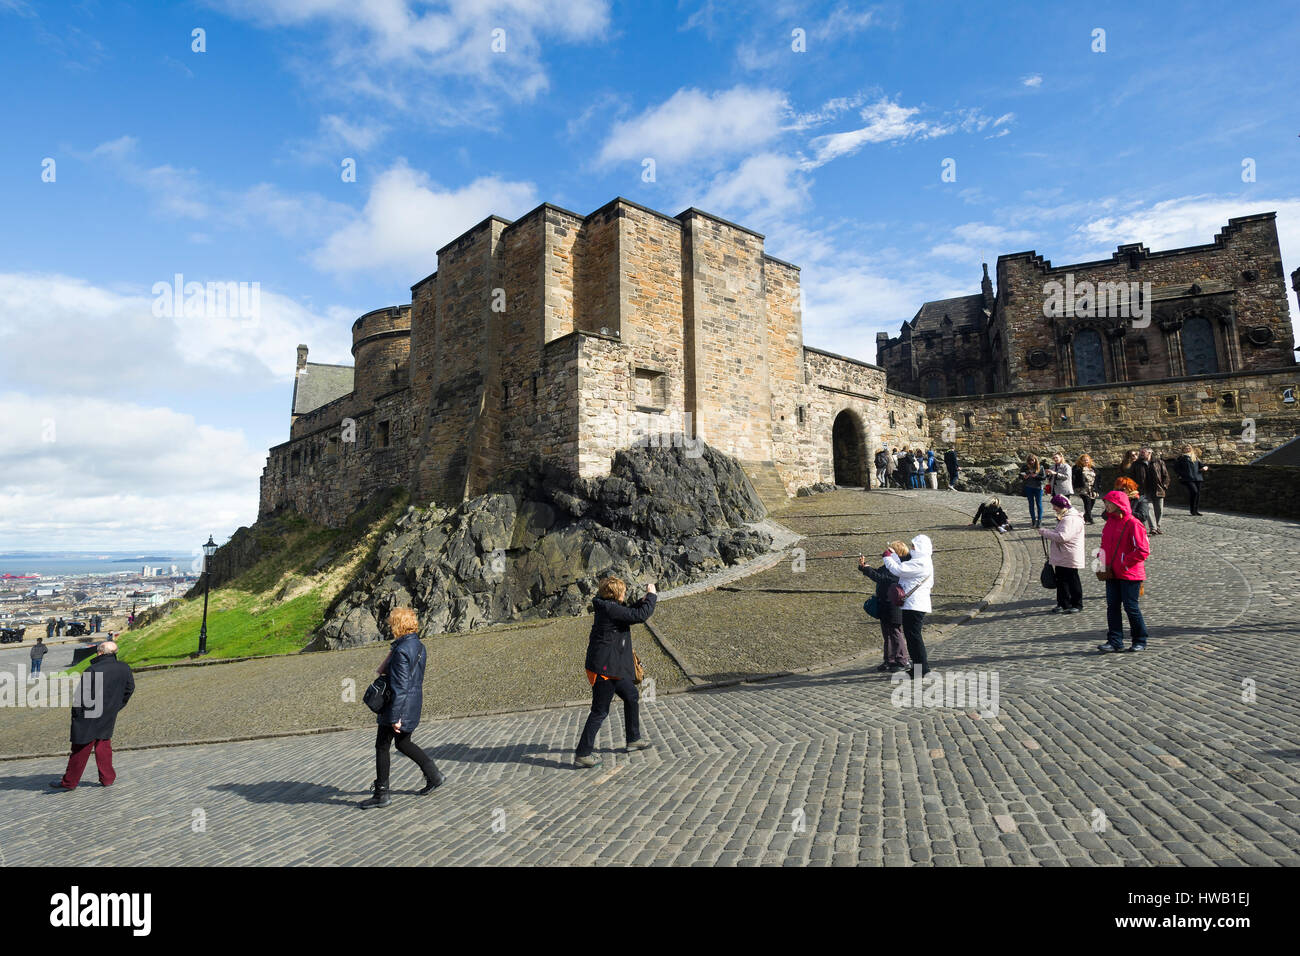 Tourists exploring Edinburgh Castle, Edinburgh Scotland. - Stock Image